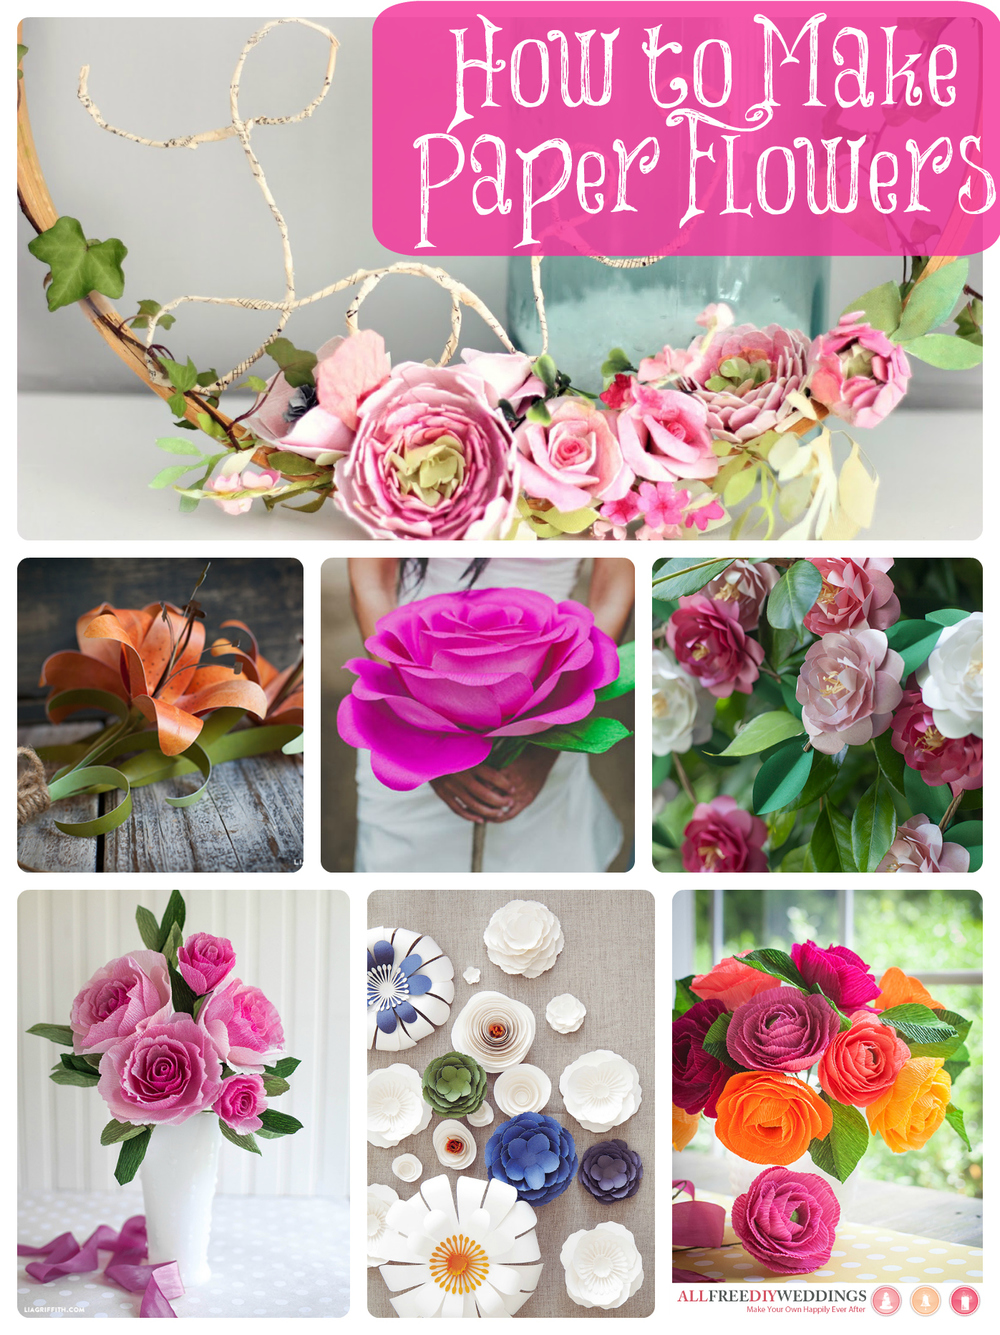 How to make paper flowers 40 diy wedding ideas for Decorative flowers for crafts